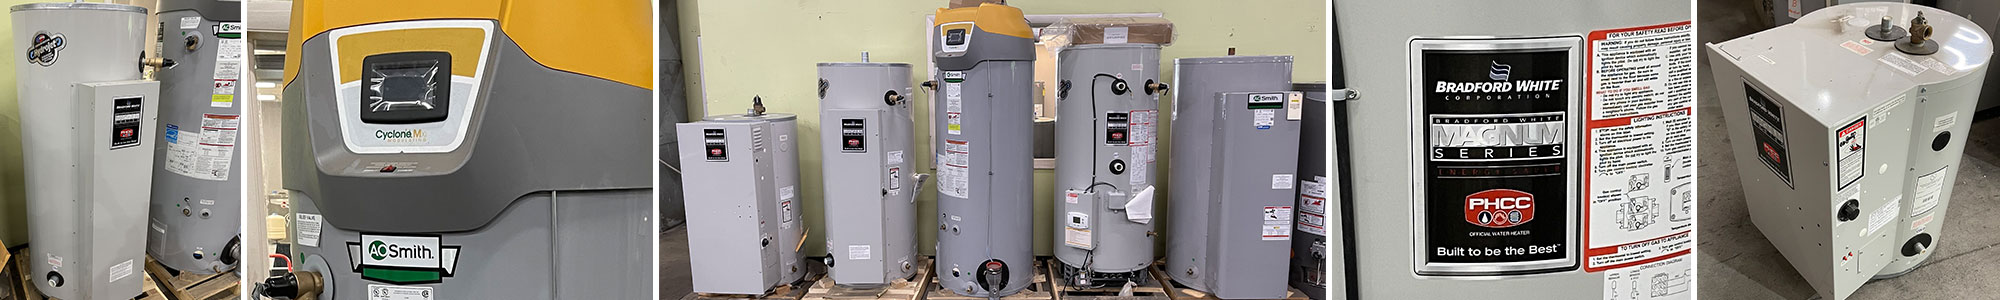 Collage photos of commercial water heaters in the building